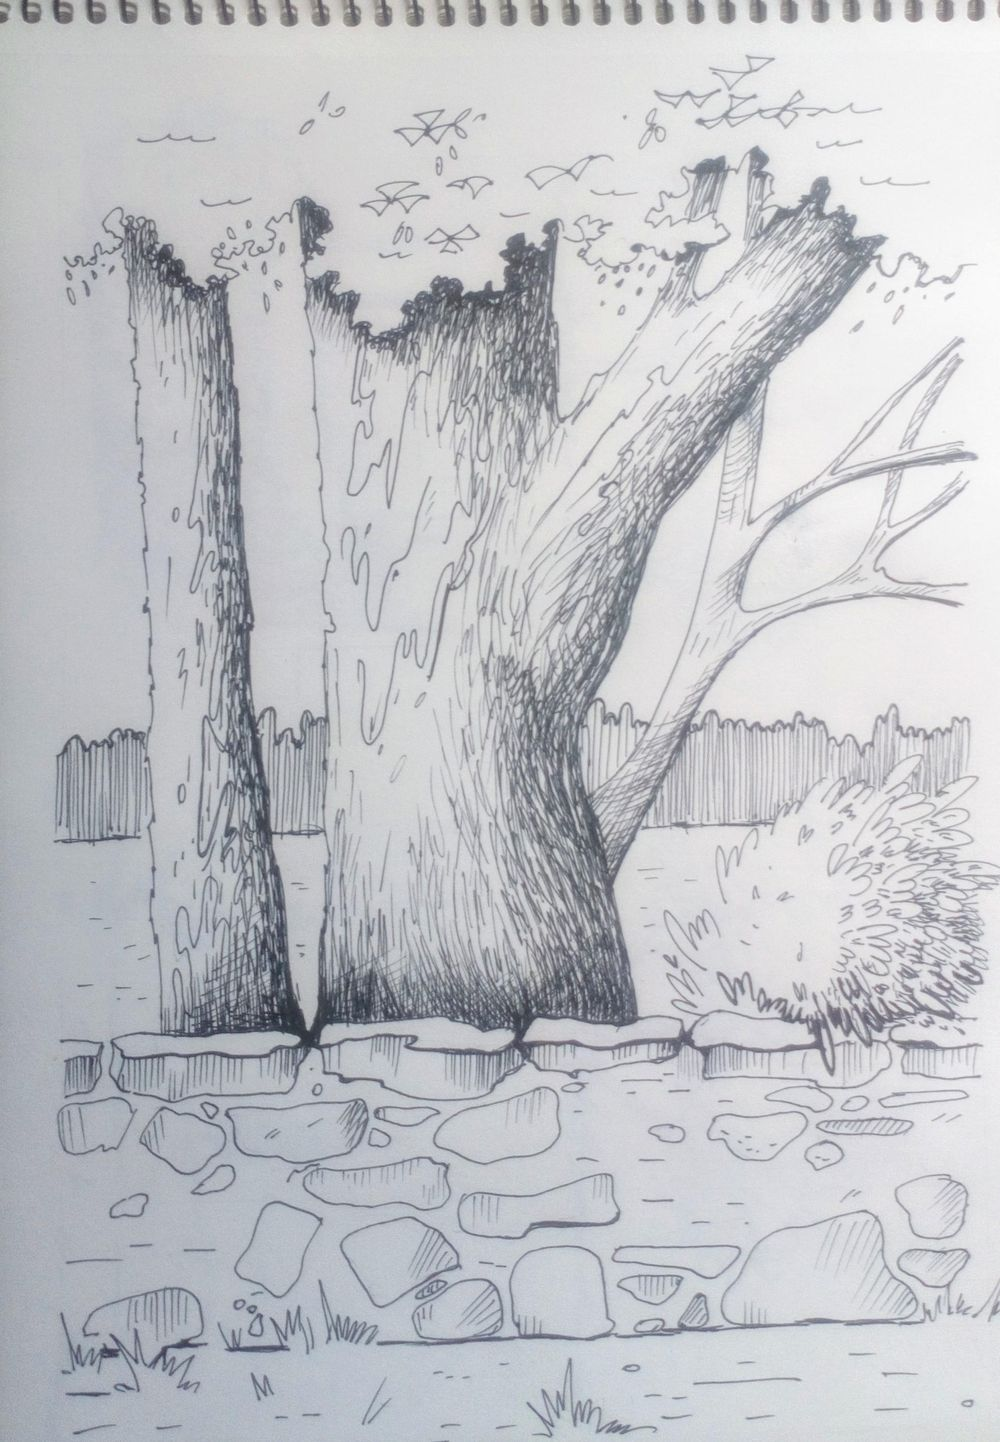 Greenery in Urban Sketching - image 5 - student project